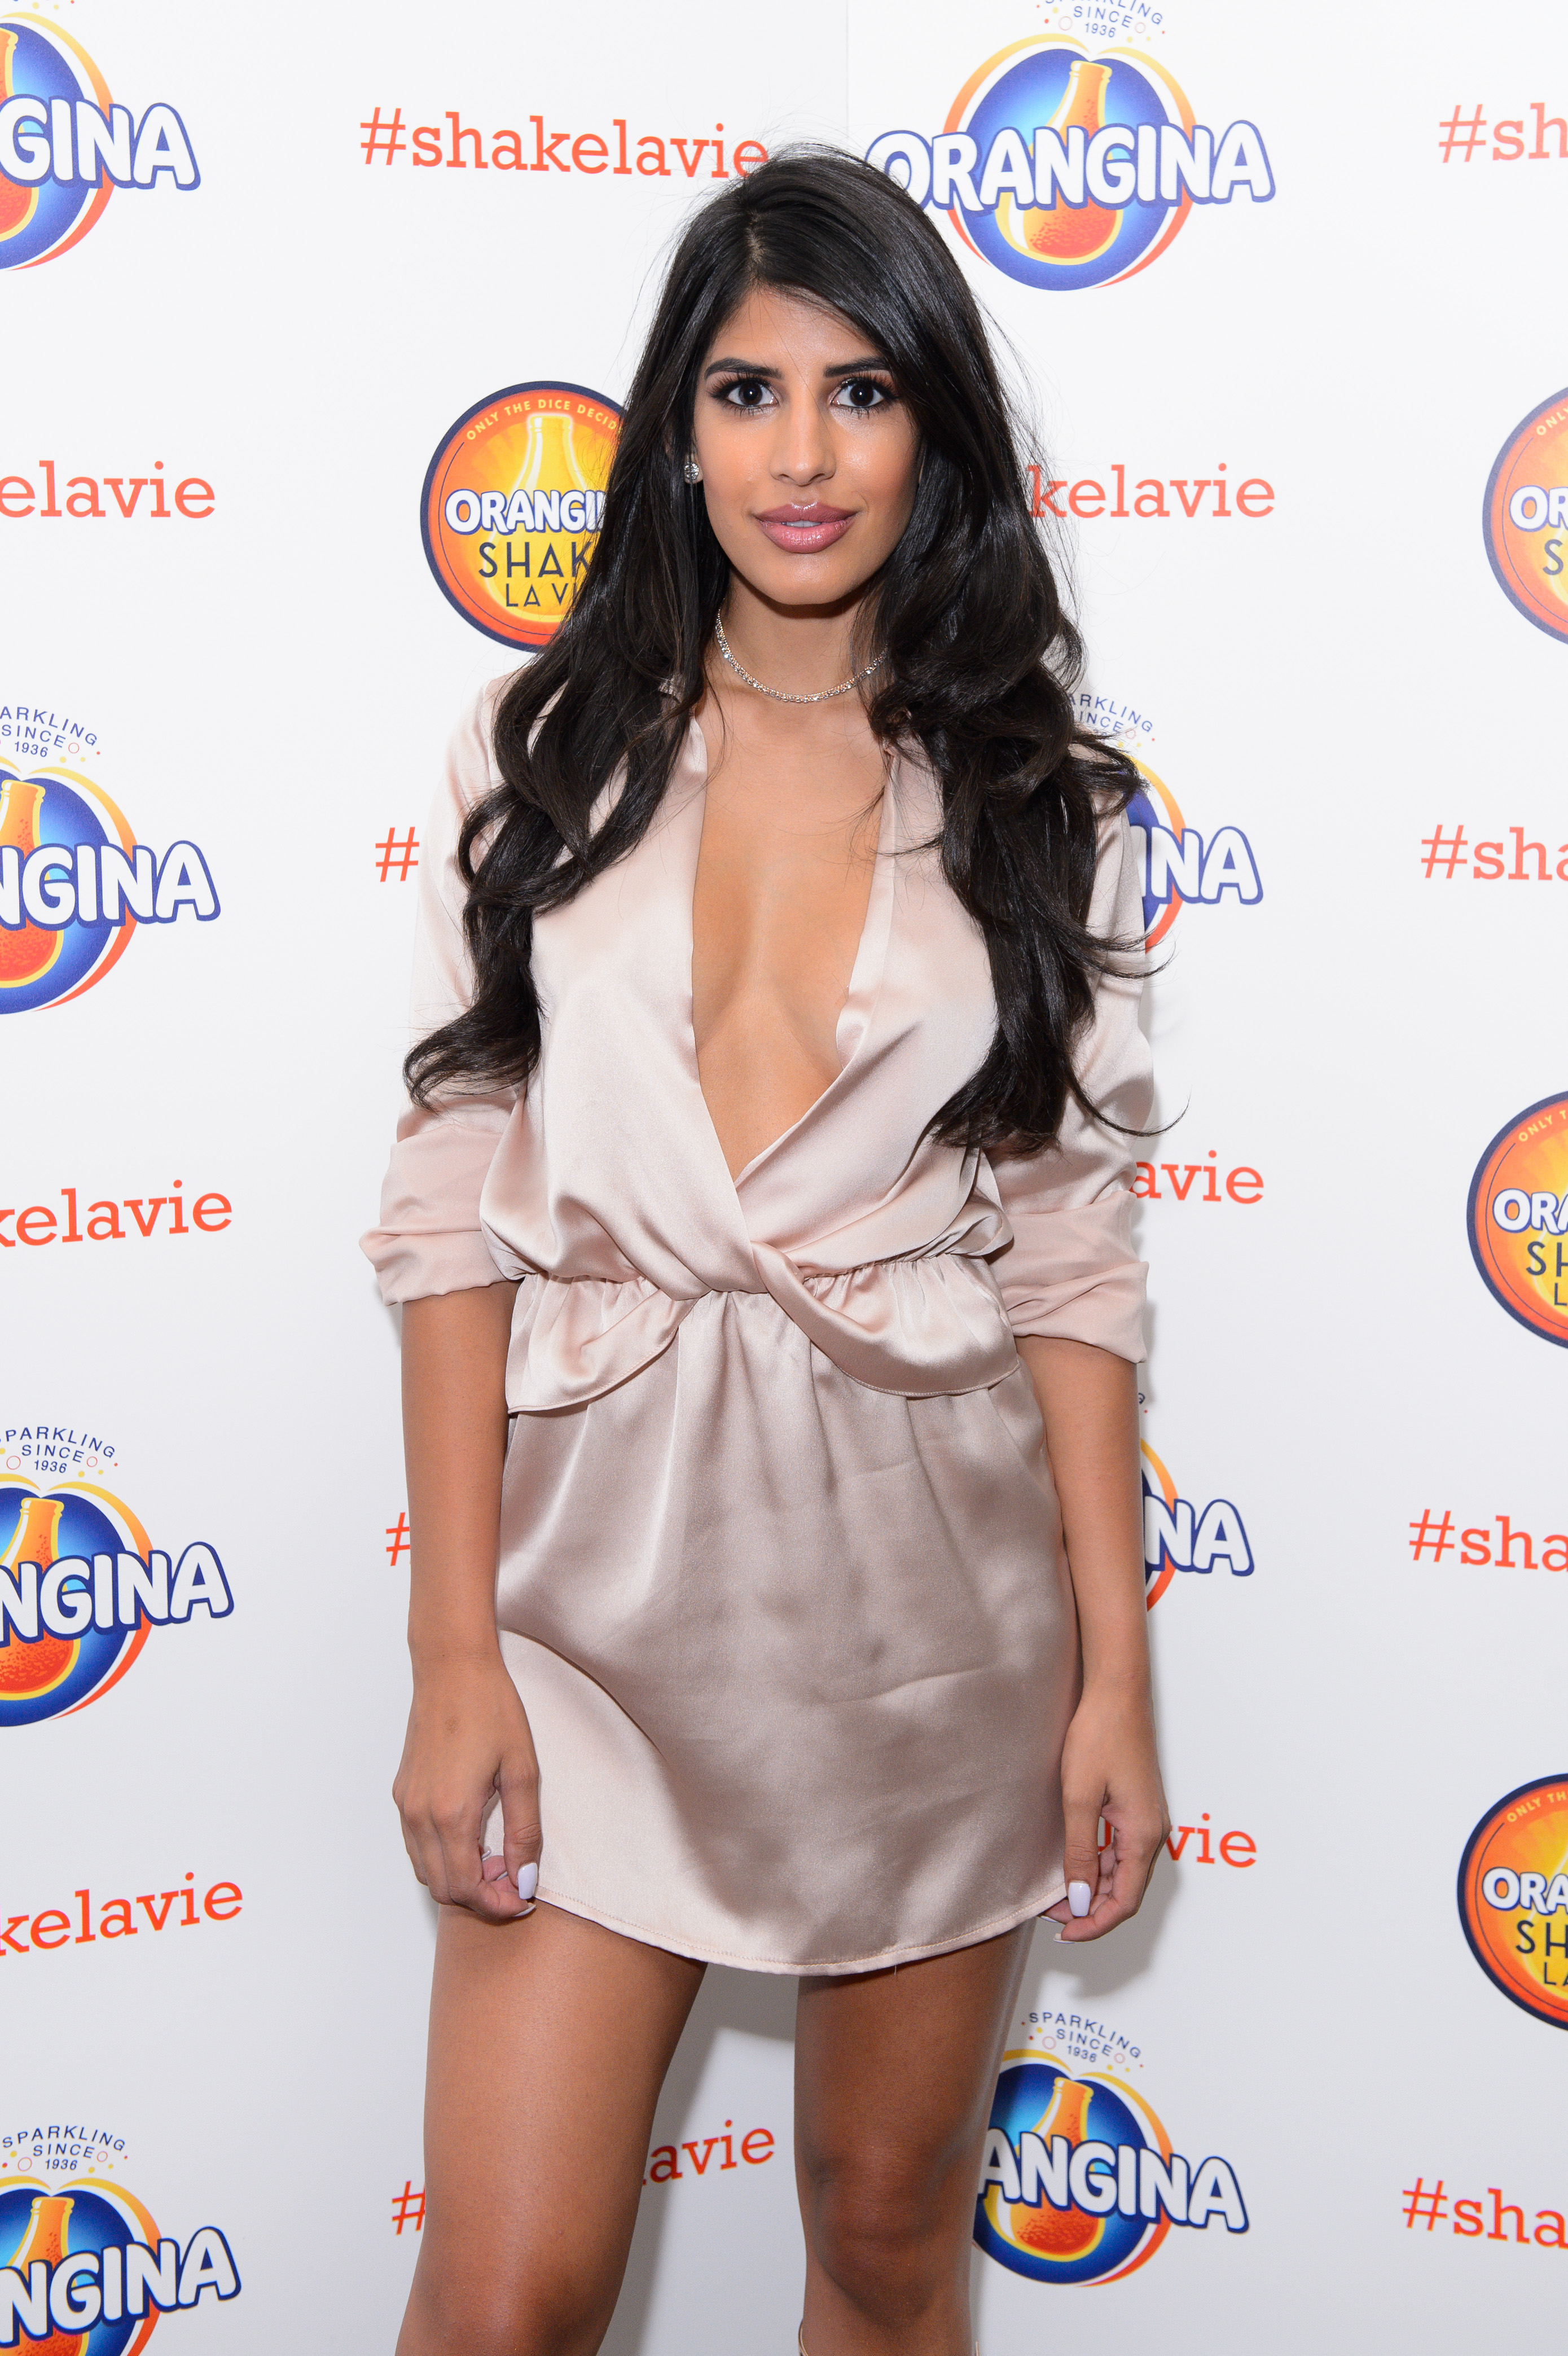 Jasmin Walia at the Orangina #ShakeLaVie party. Find out more and get your tickets from www.shakelavie.co.uk